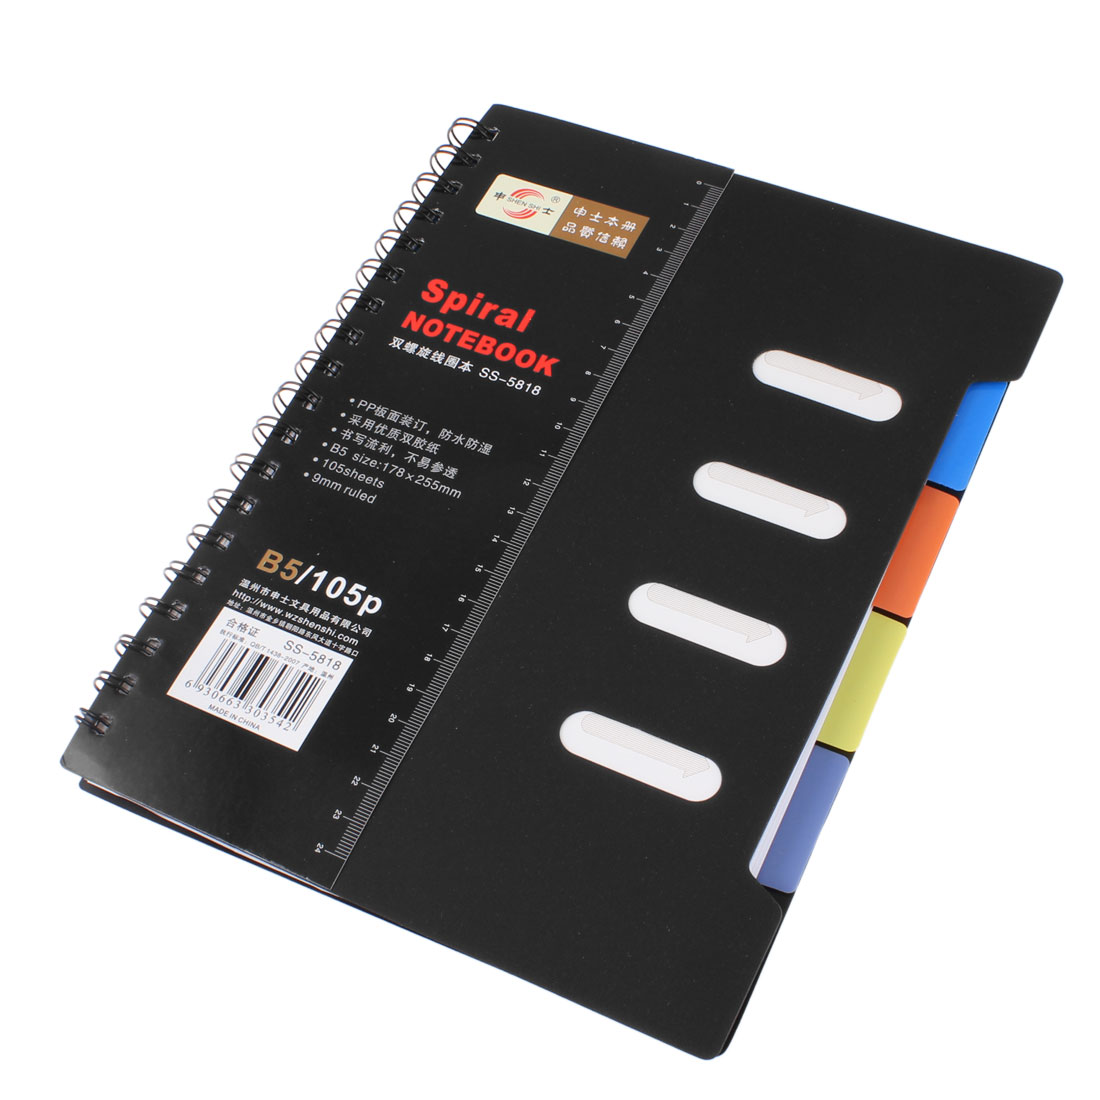 178mm x 255mm Plastic Cover Wire Bound Notebook for Students